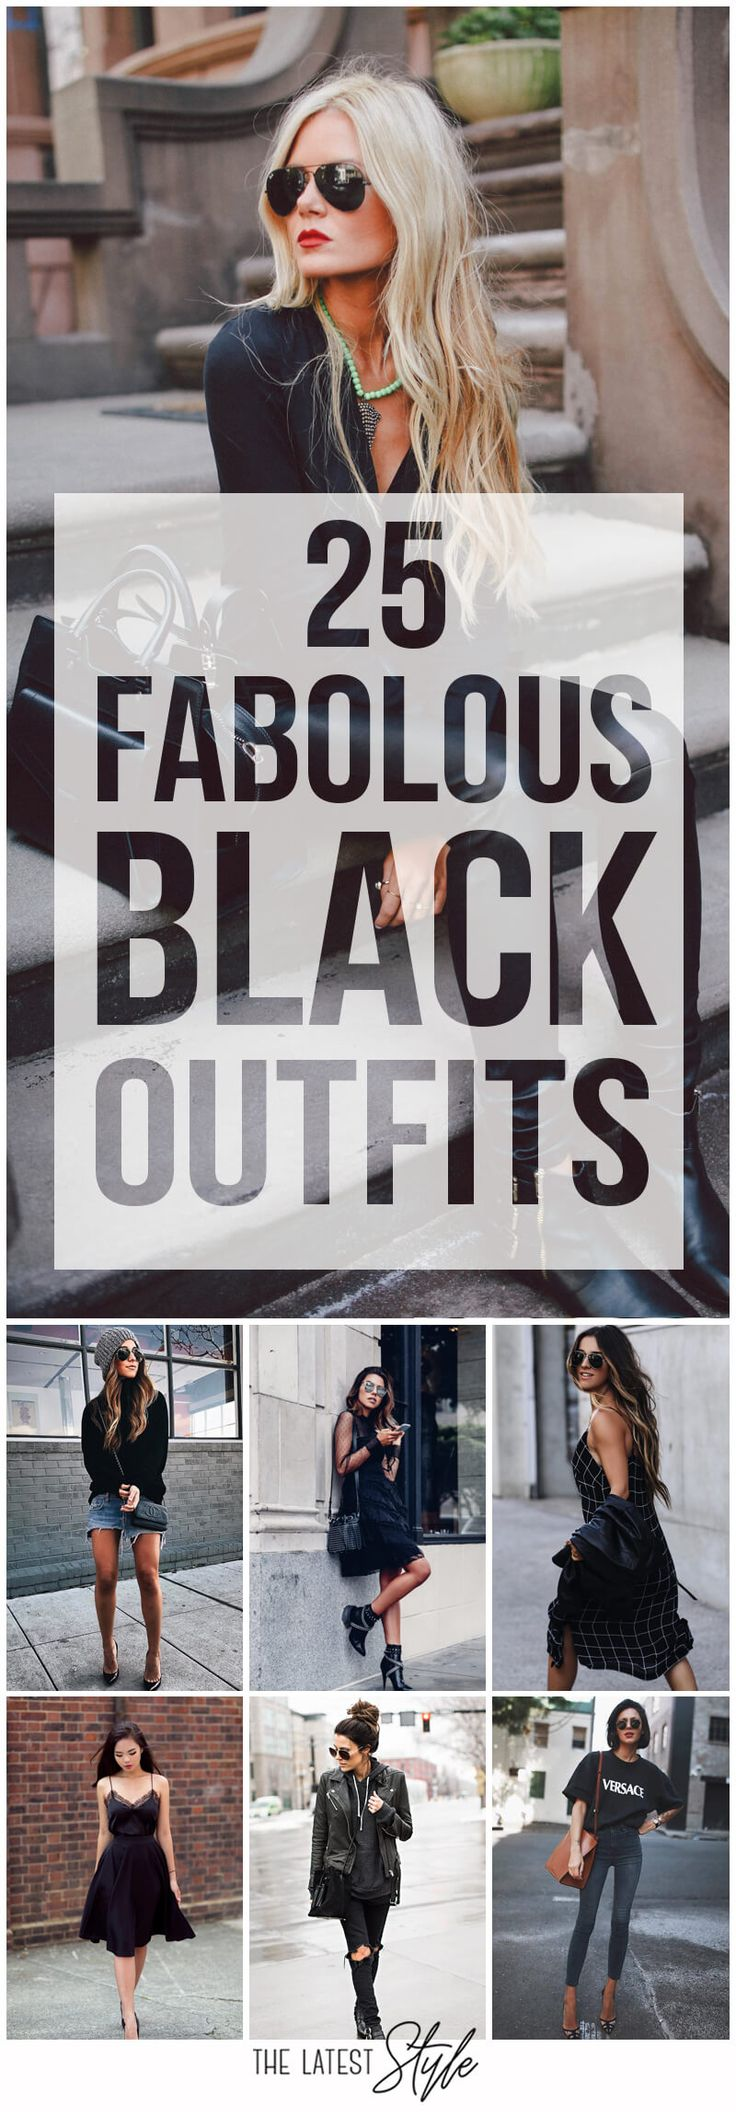 25 Fabolous Black Outfits